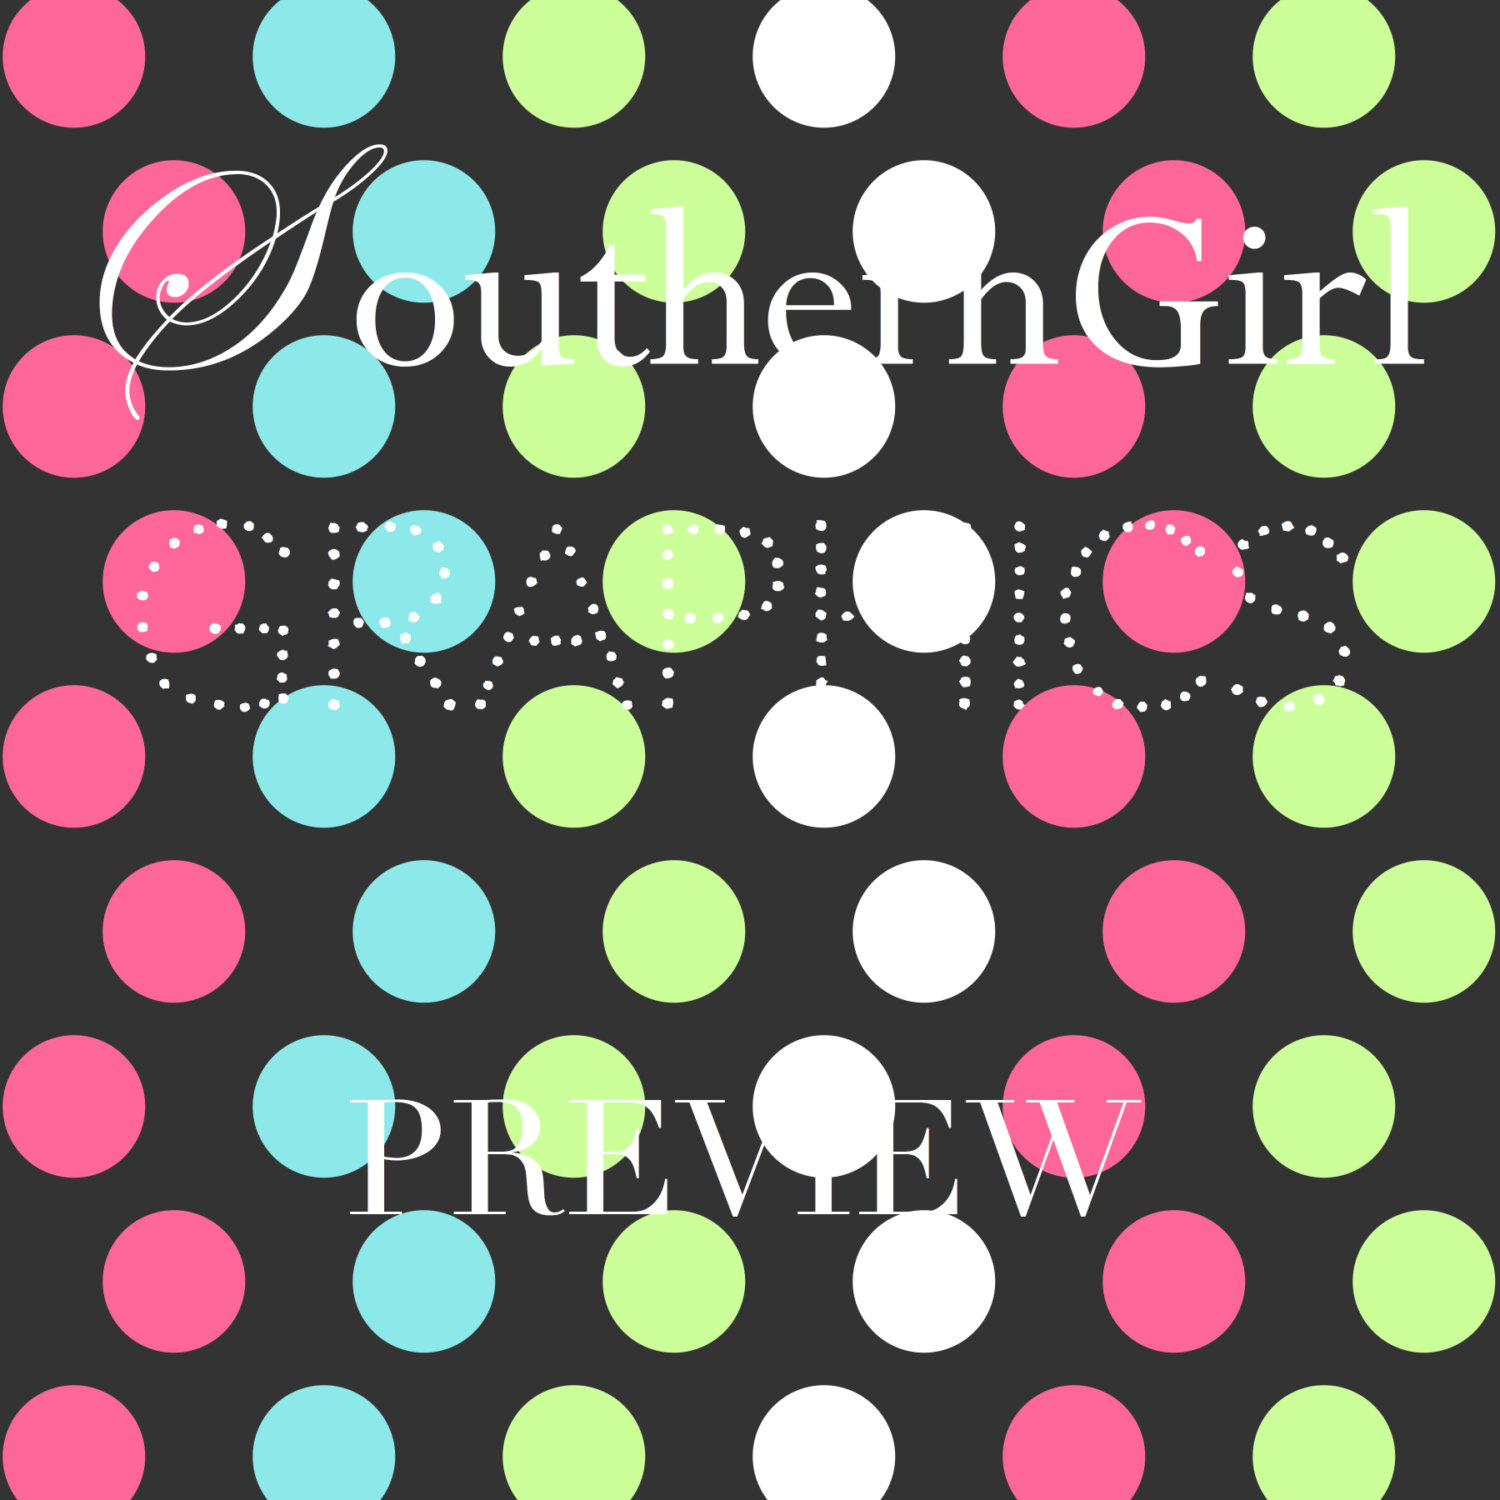 Diamond clipart neon Green a file blue Paper: